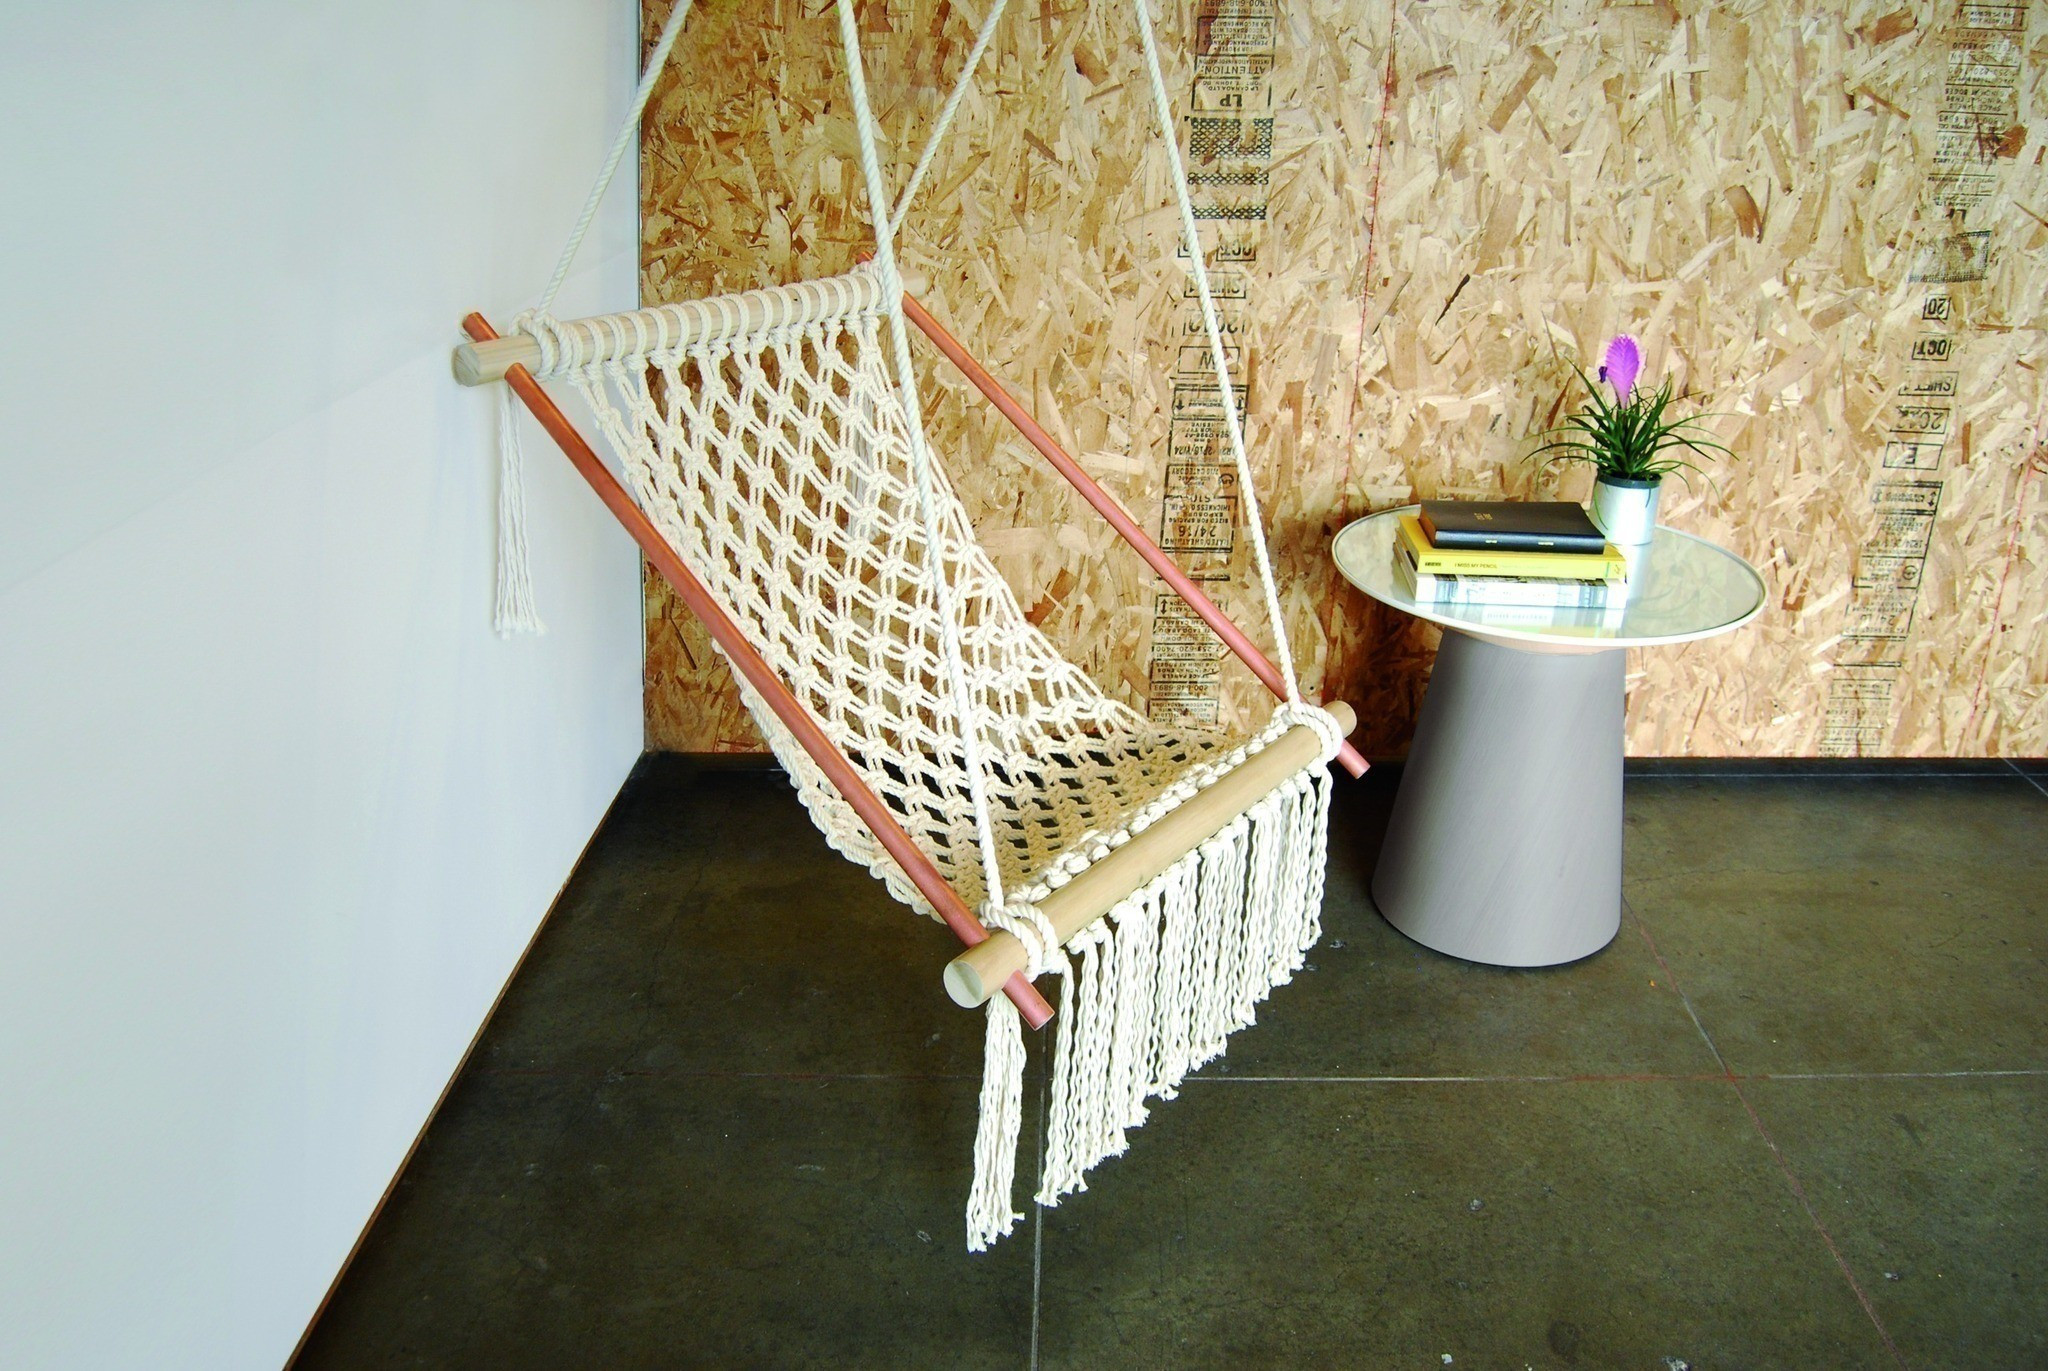 Best ideas about DIY Macrame Chair . Save or Pin Hanging Chair · Extract from DIY Furniture 2 by Now.